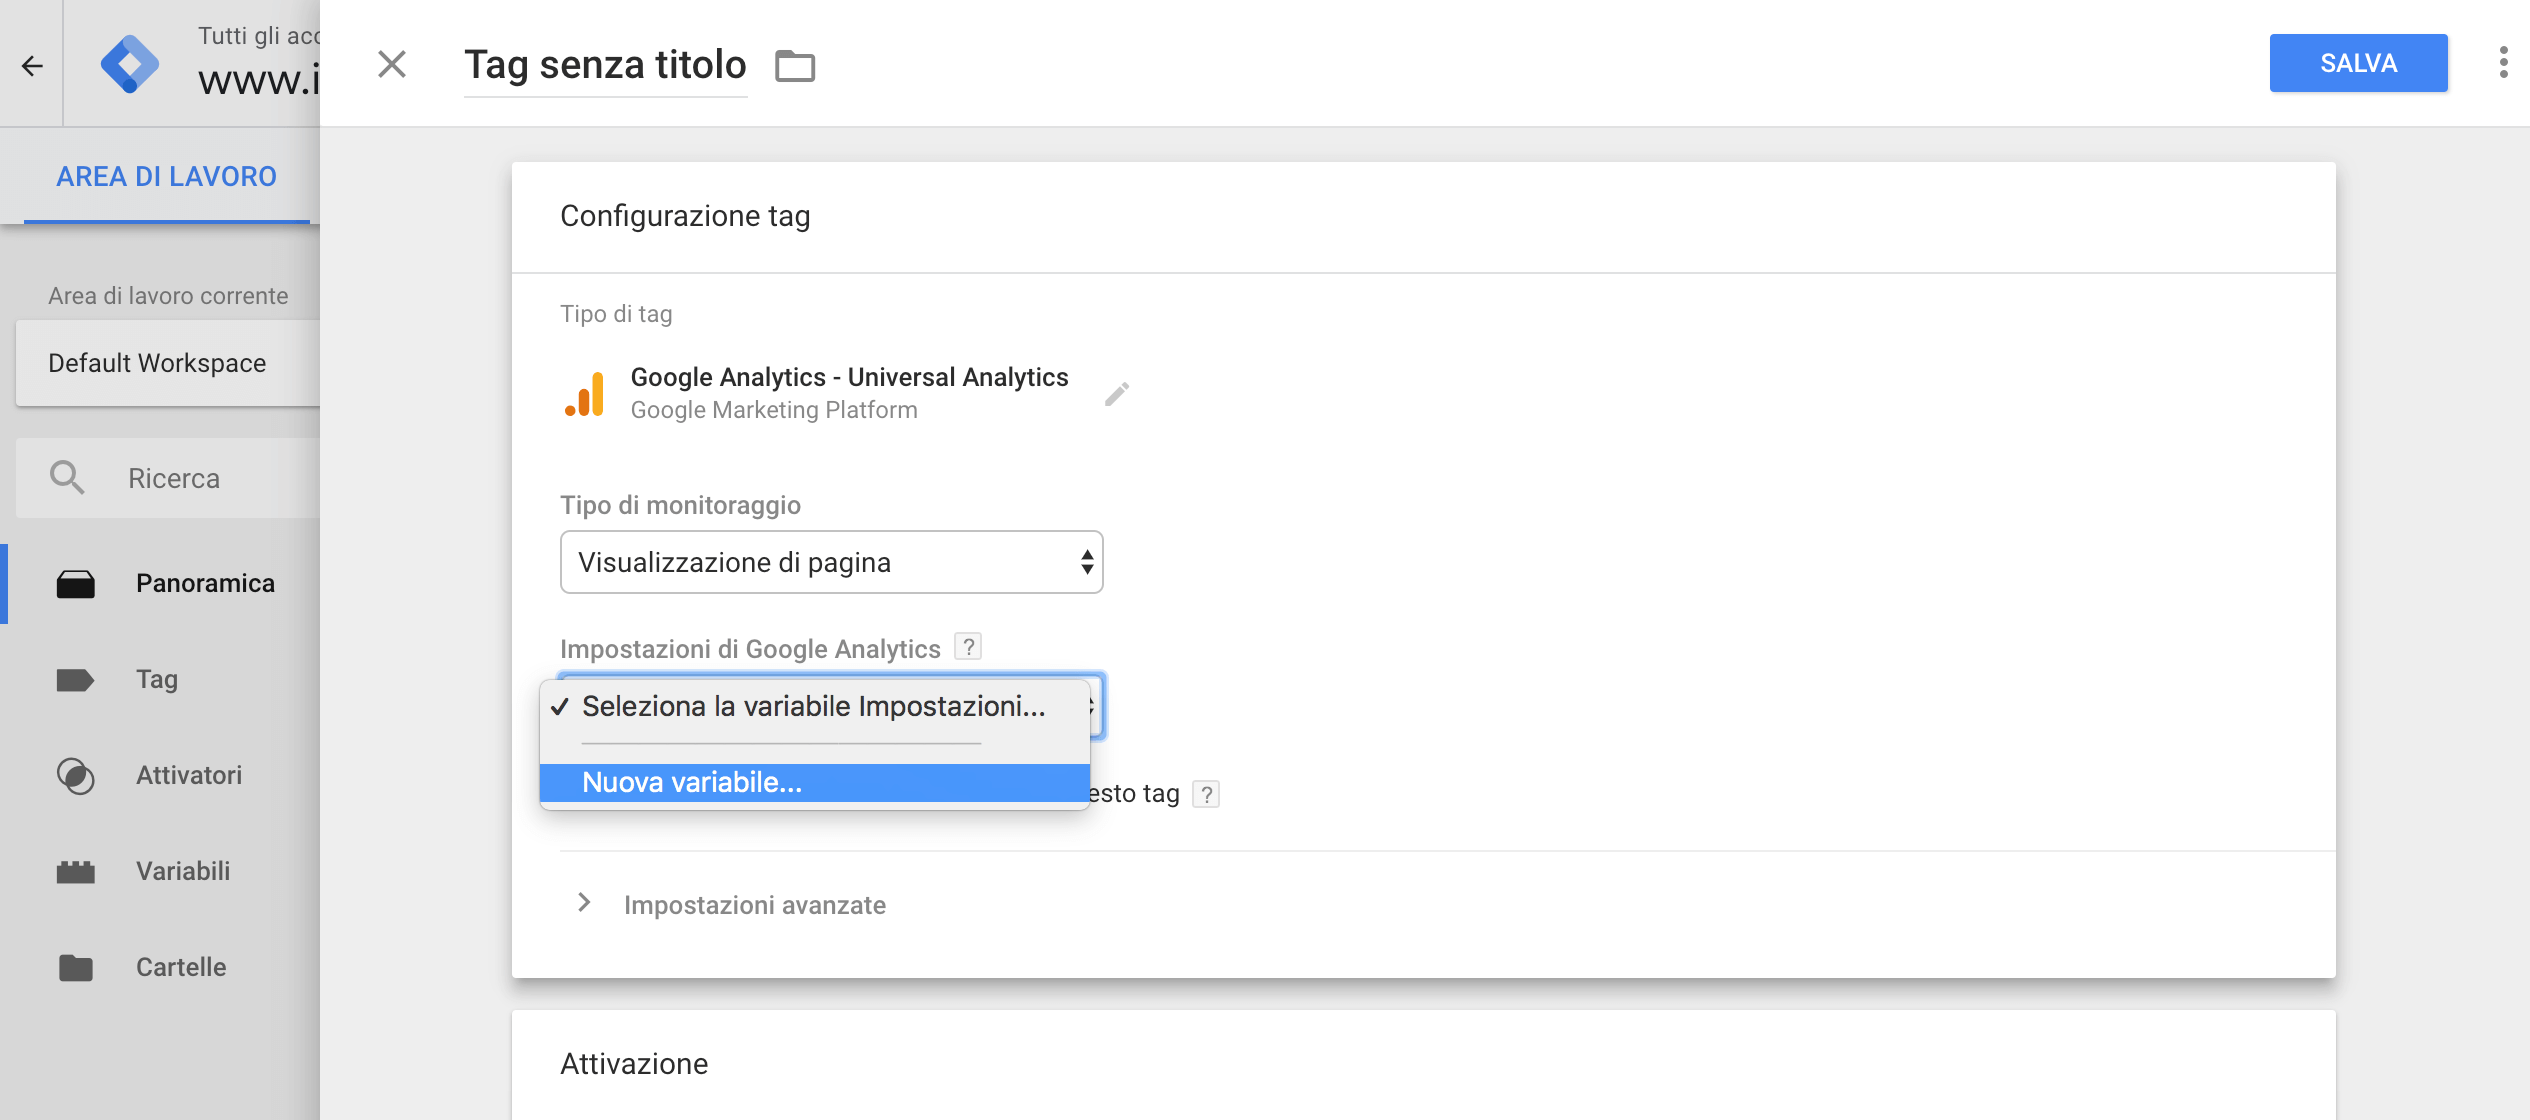 Google Tag Manager - Nuova variabile